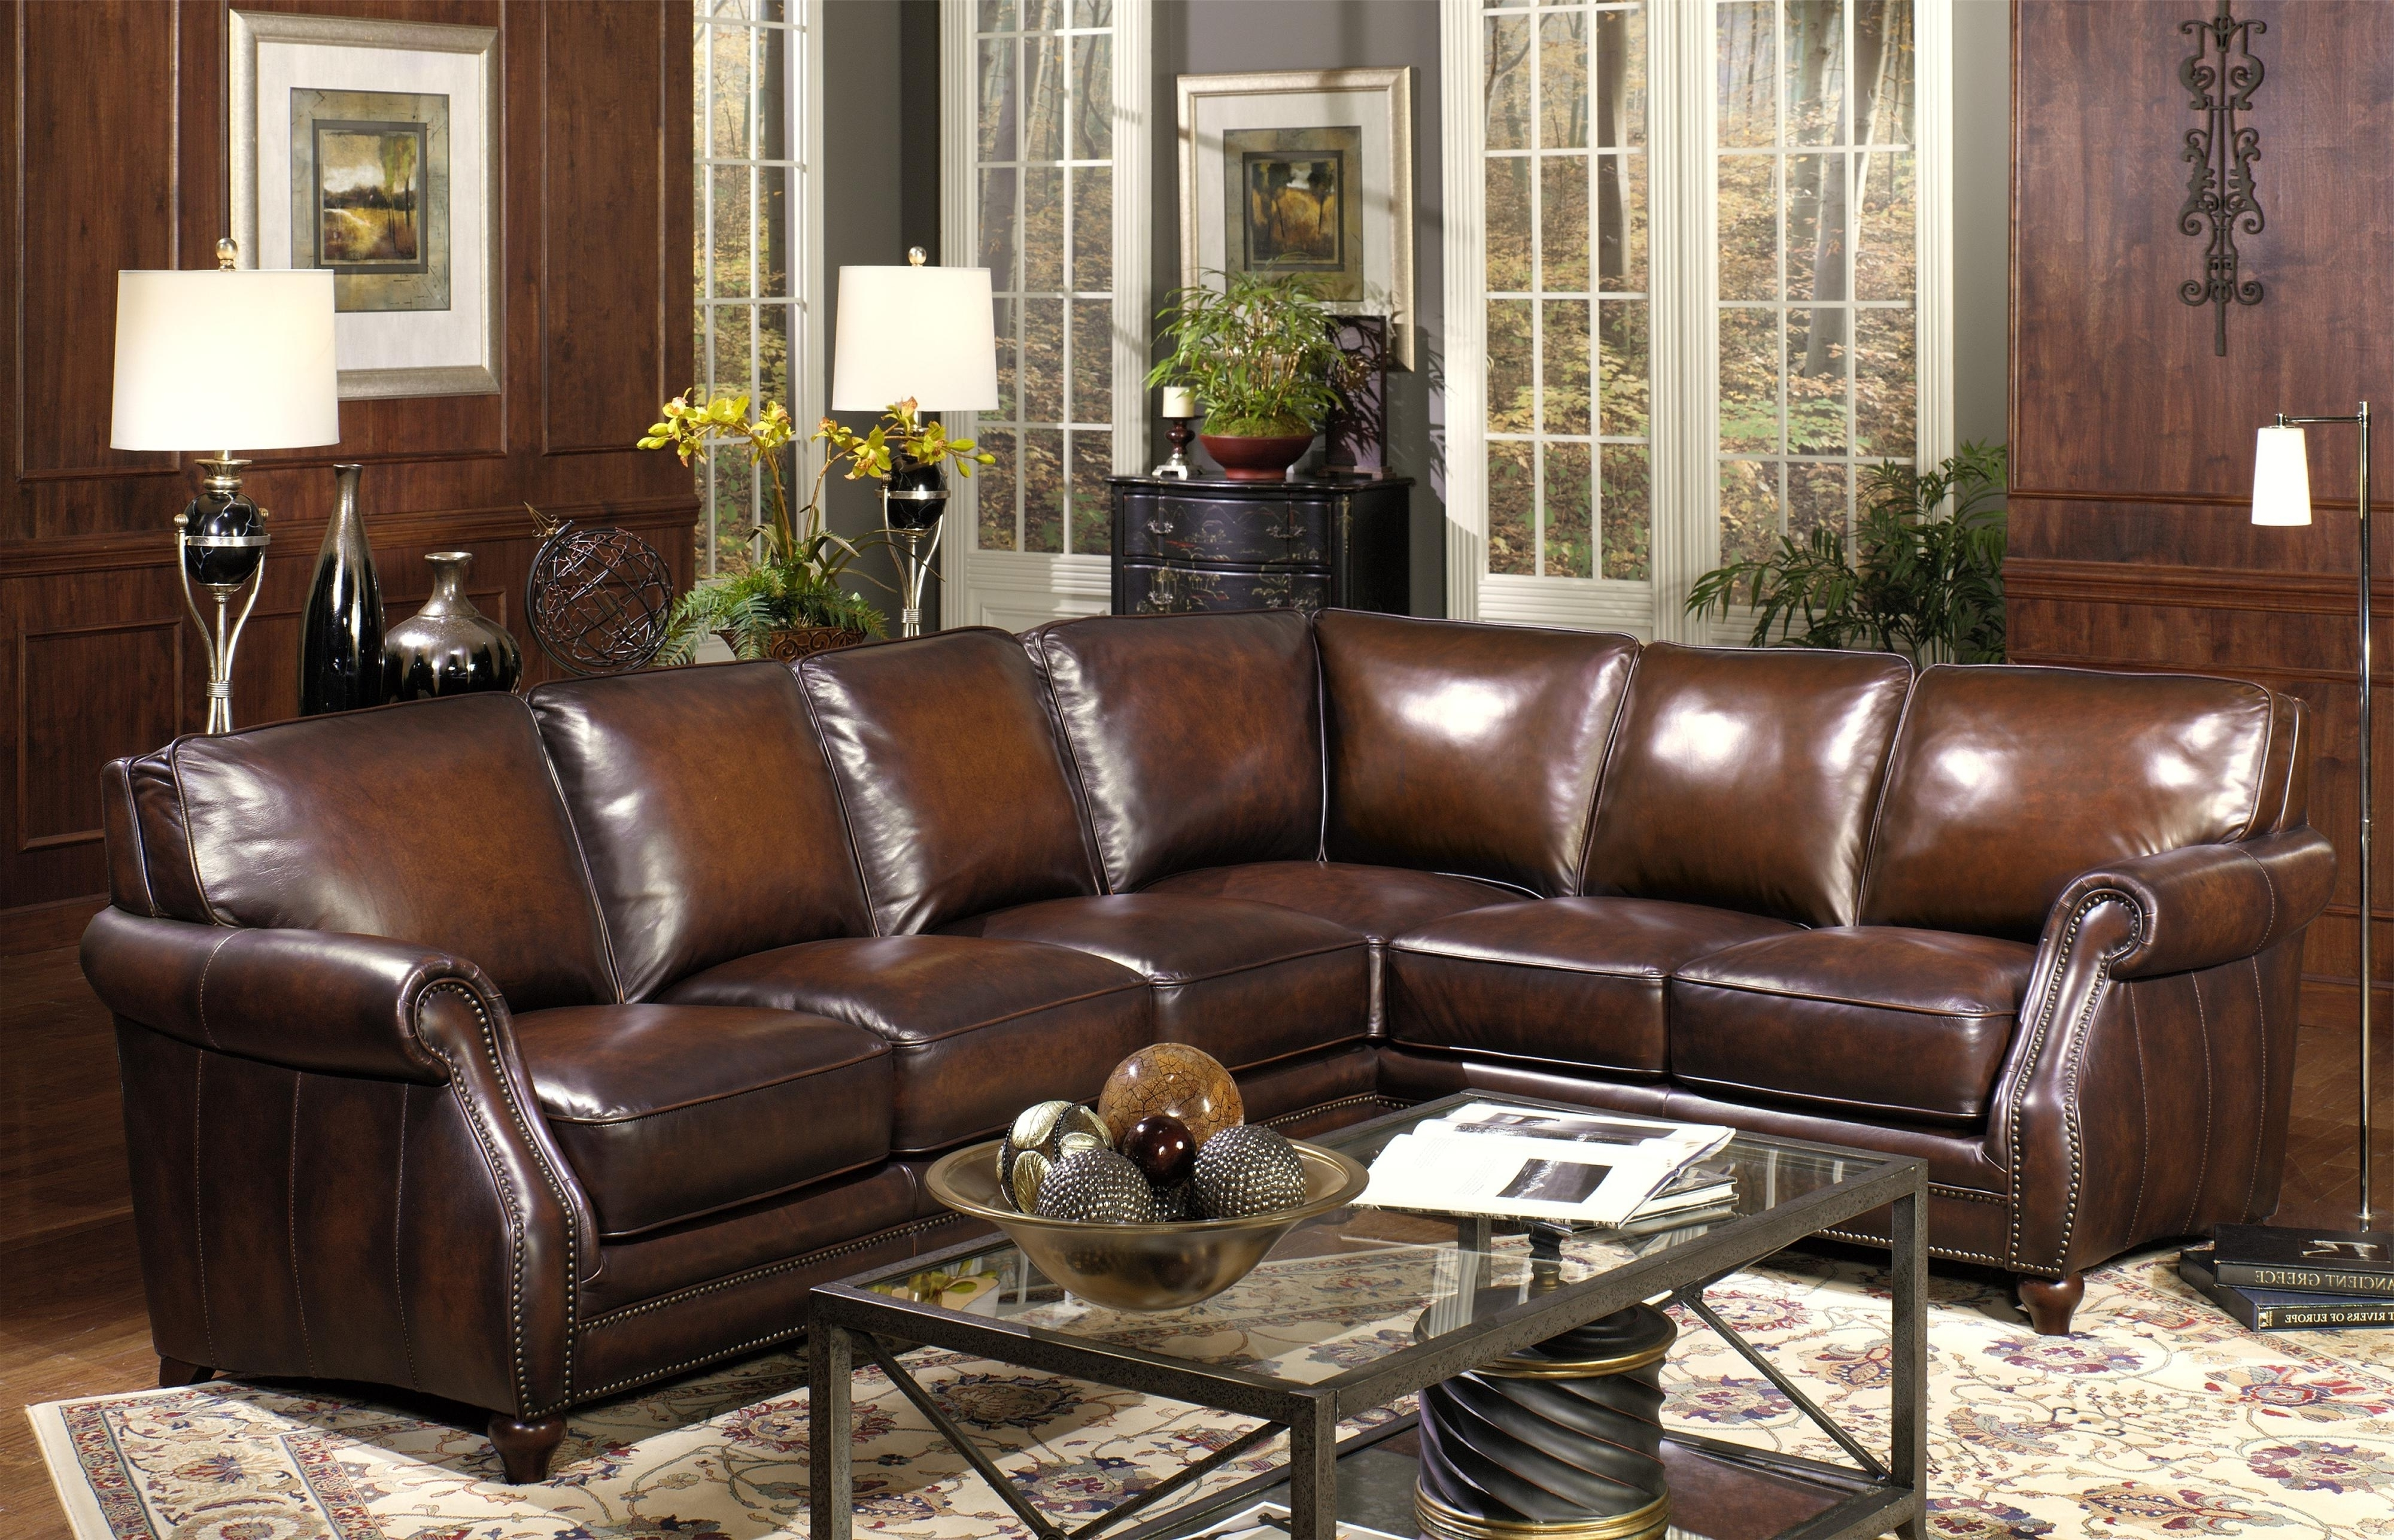 Elegant Sectional Sofas For Most Recent Elegant Leather Sectional Sofas San Diego 35 On Gray Modular In (View 7 of 20)